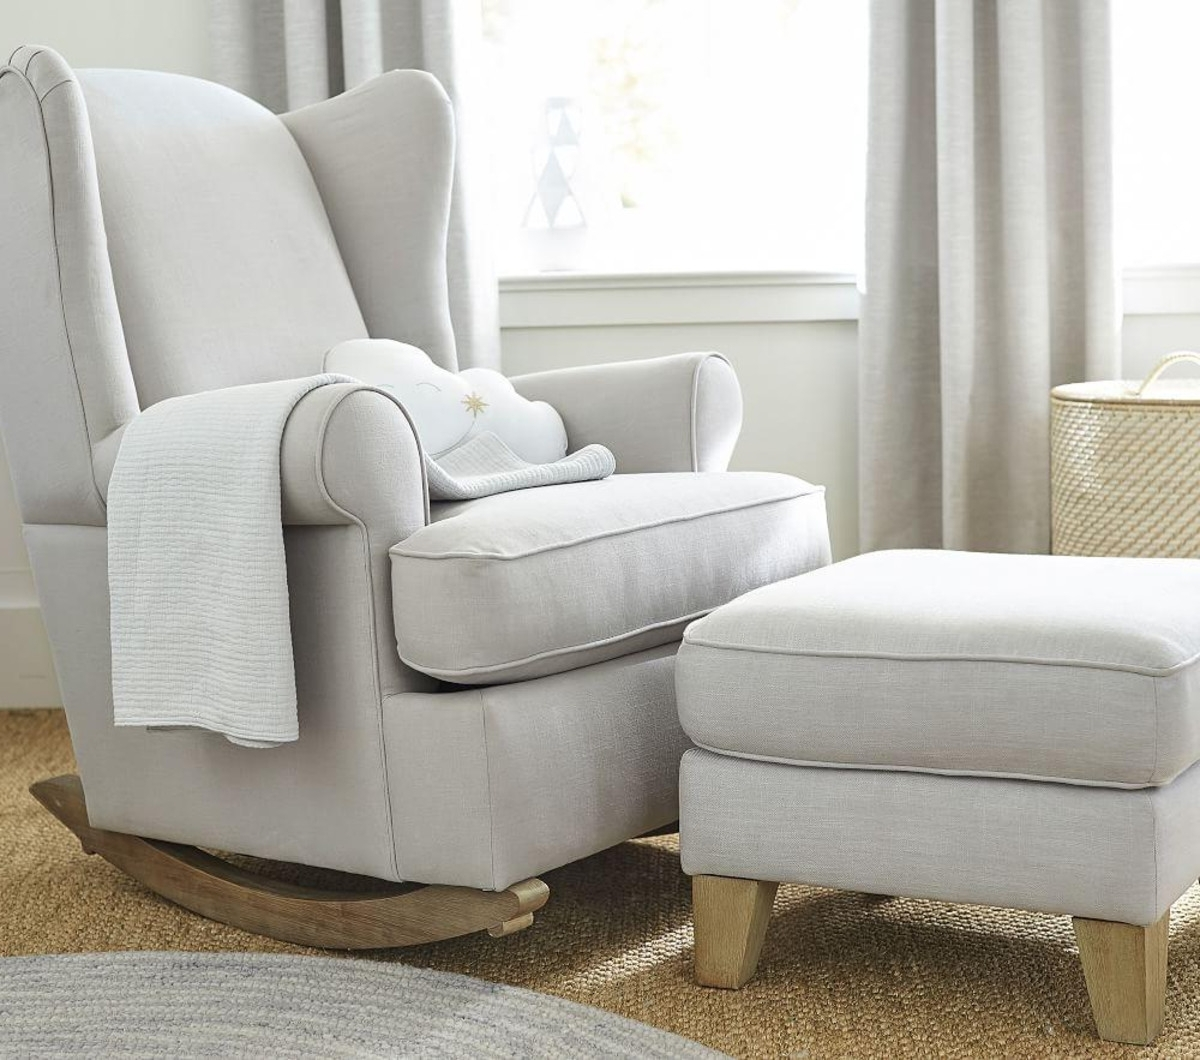 Rocking Chairs For Nursing Intended For Latest Ottomans : Rocking Chair Ottoman The Best Feeding And Nursing Chairs (View 10 of 15)